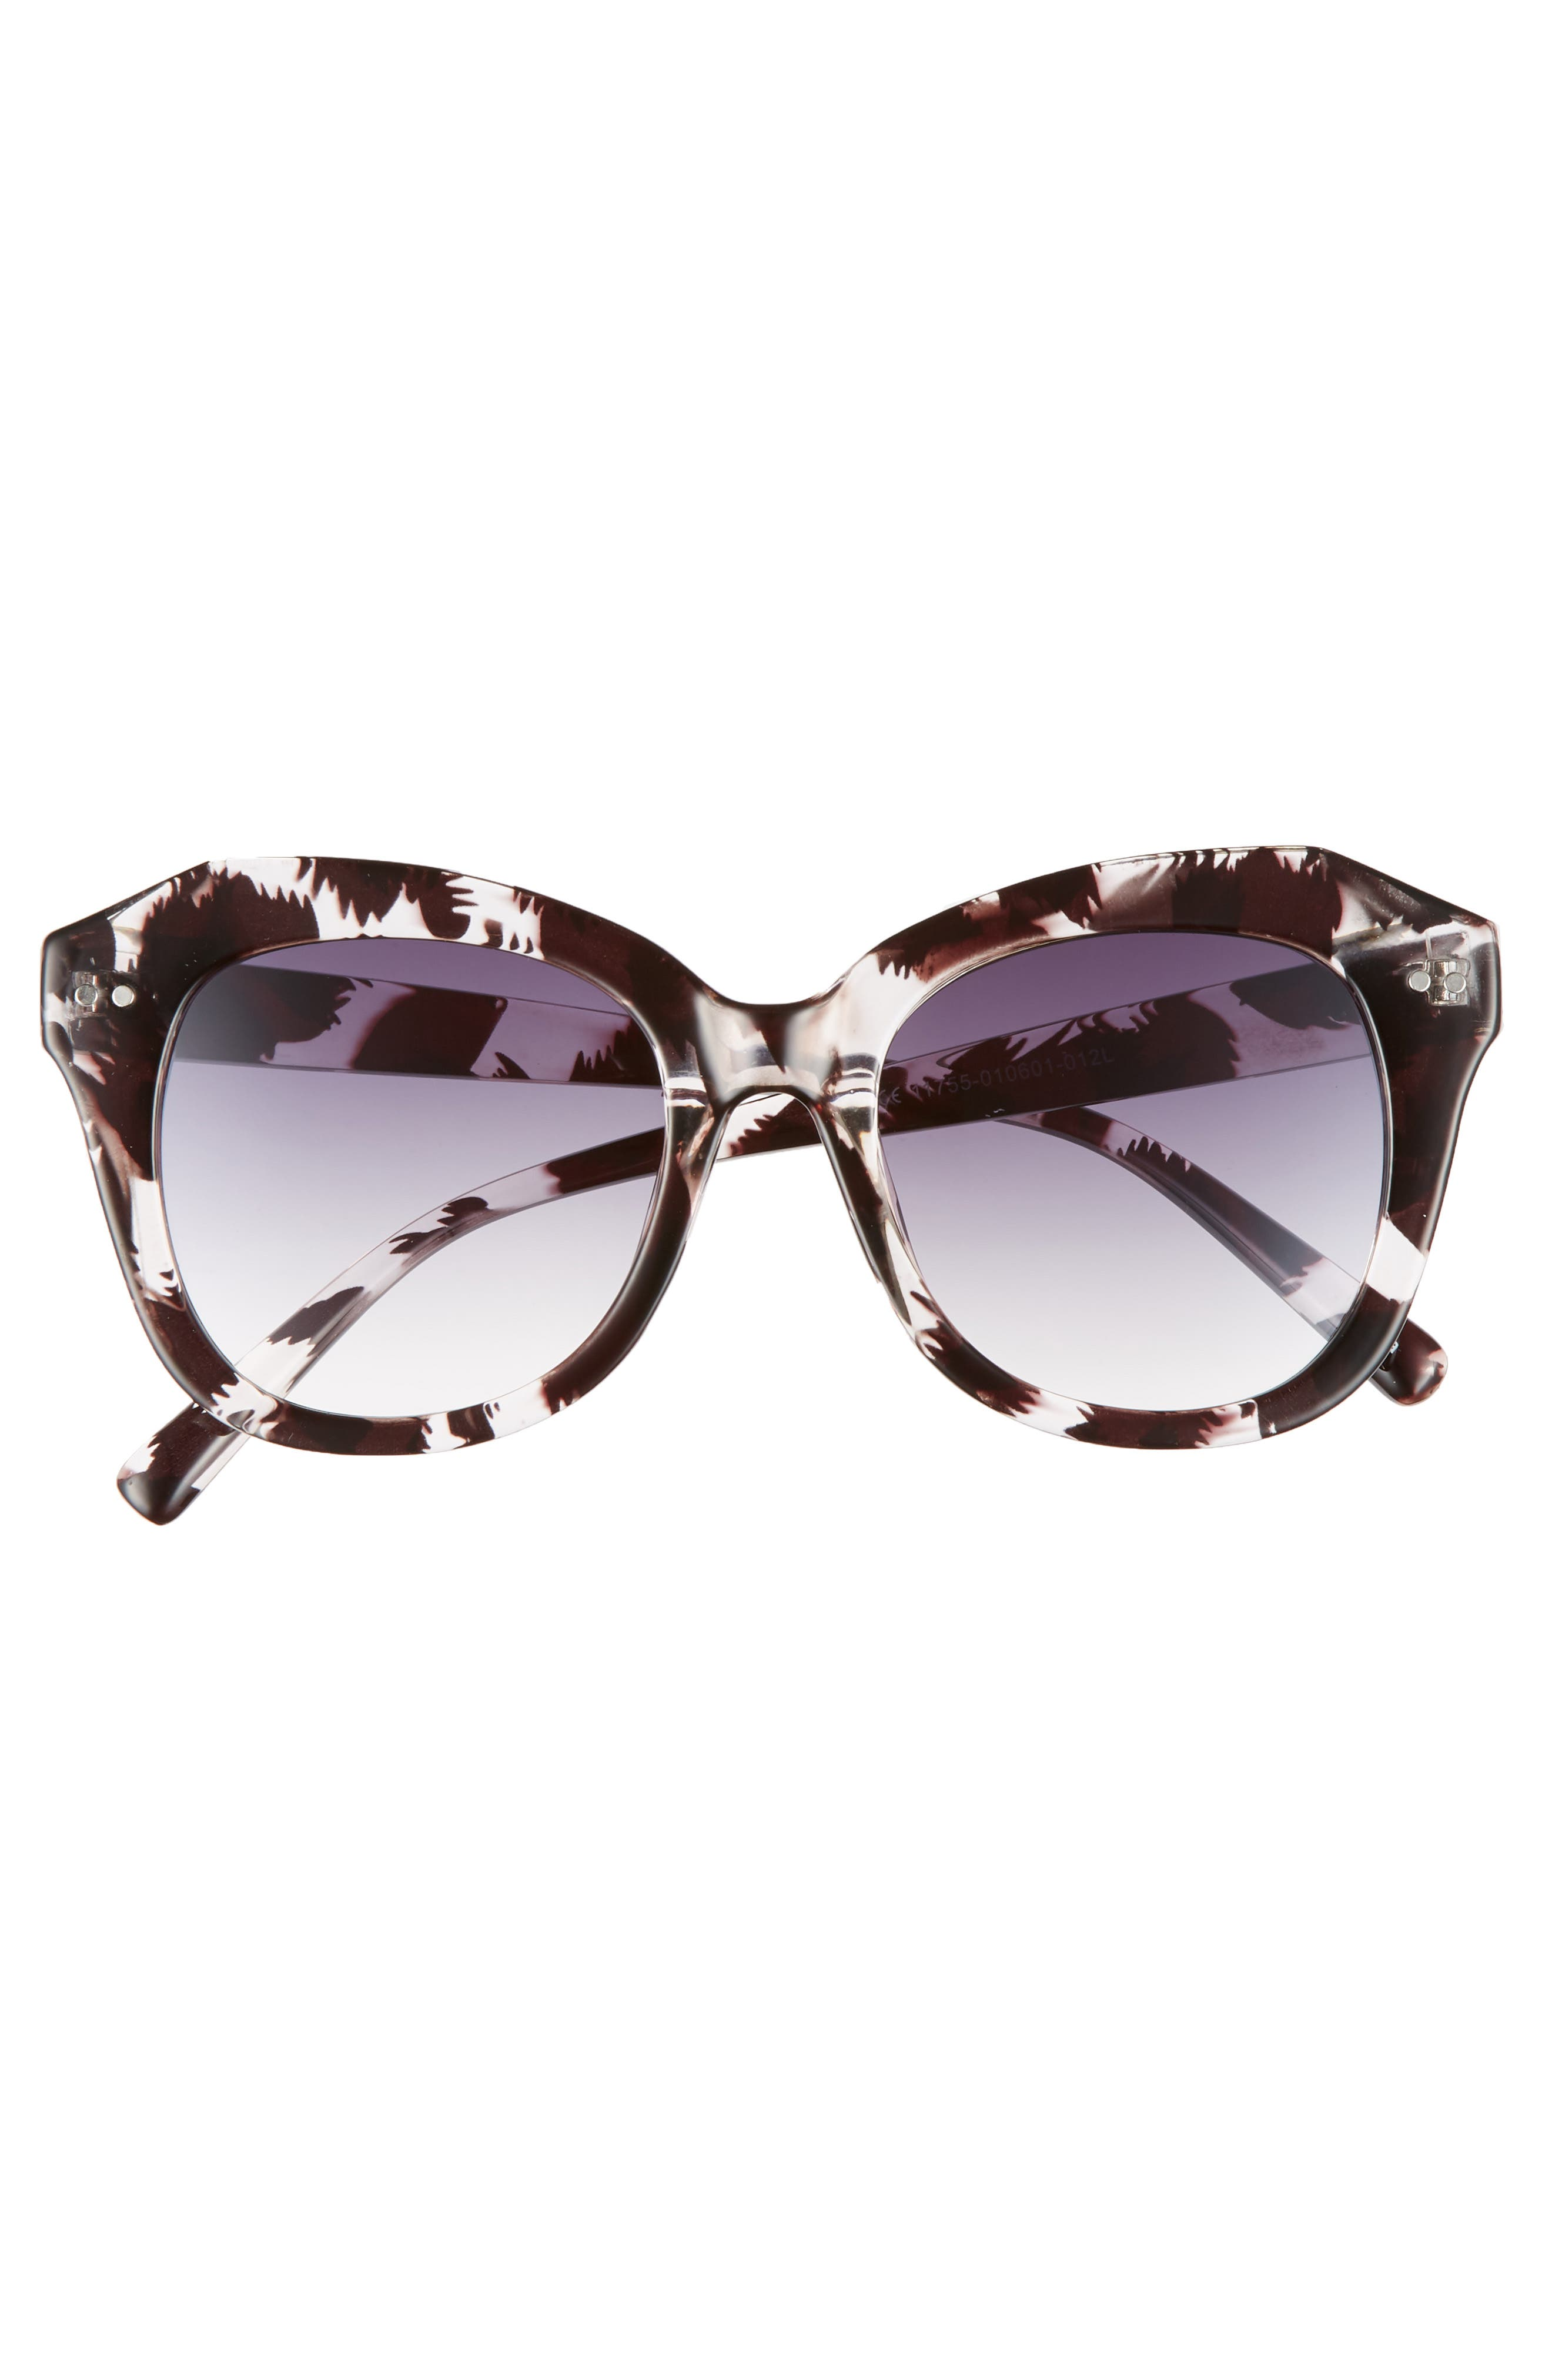 Marbled Square Sunglasses,                             Alternate thumbnail 3, color,                             Black/ Clear